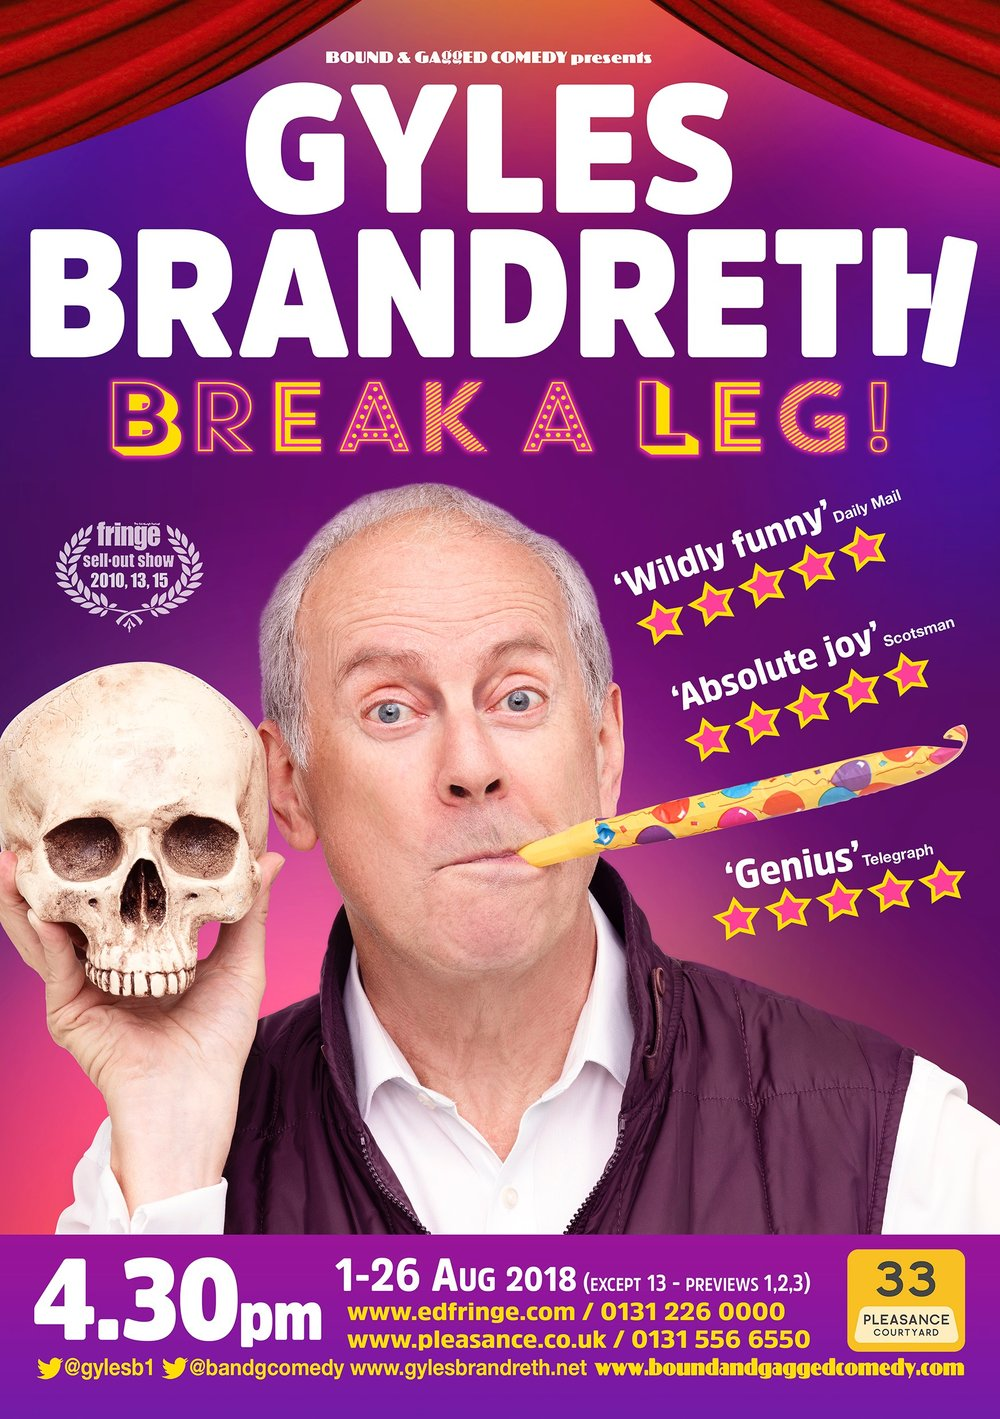 Break a leg! Edinburgh poster.jpg